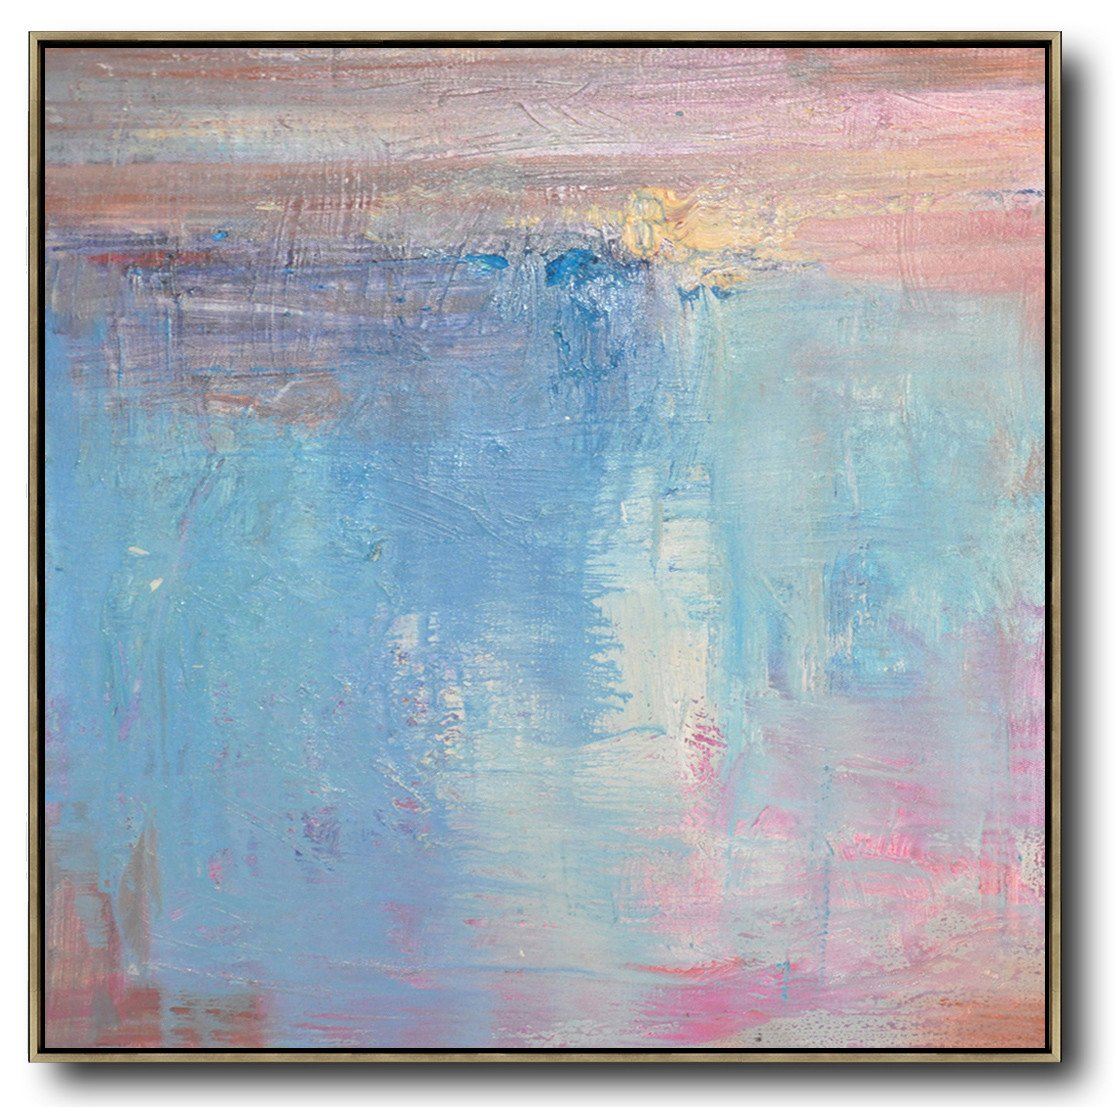 Large Abstract Art Handmade Painting,Oversized Contemporary Art,Multicolor Abstract Painting,Pink,Blue,White,Taupe.etc